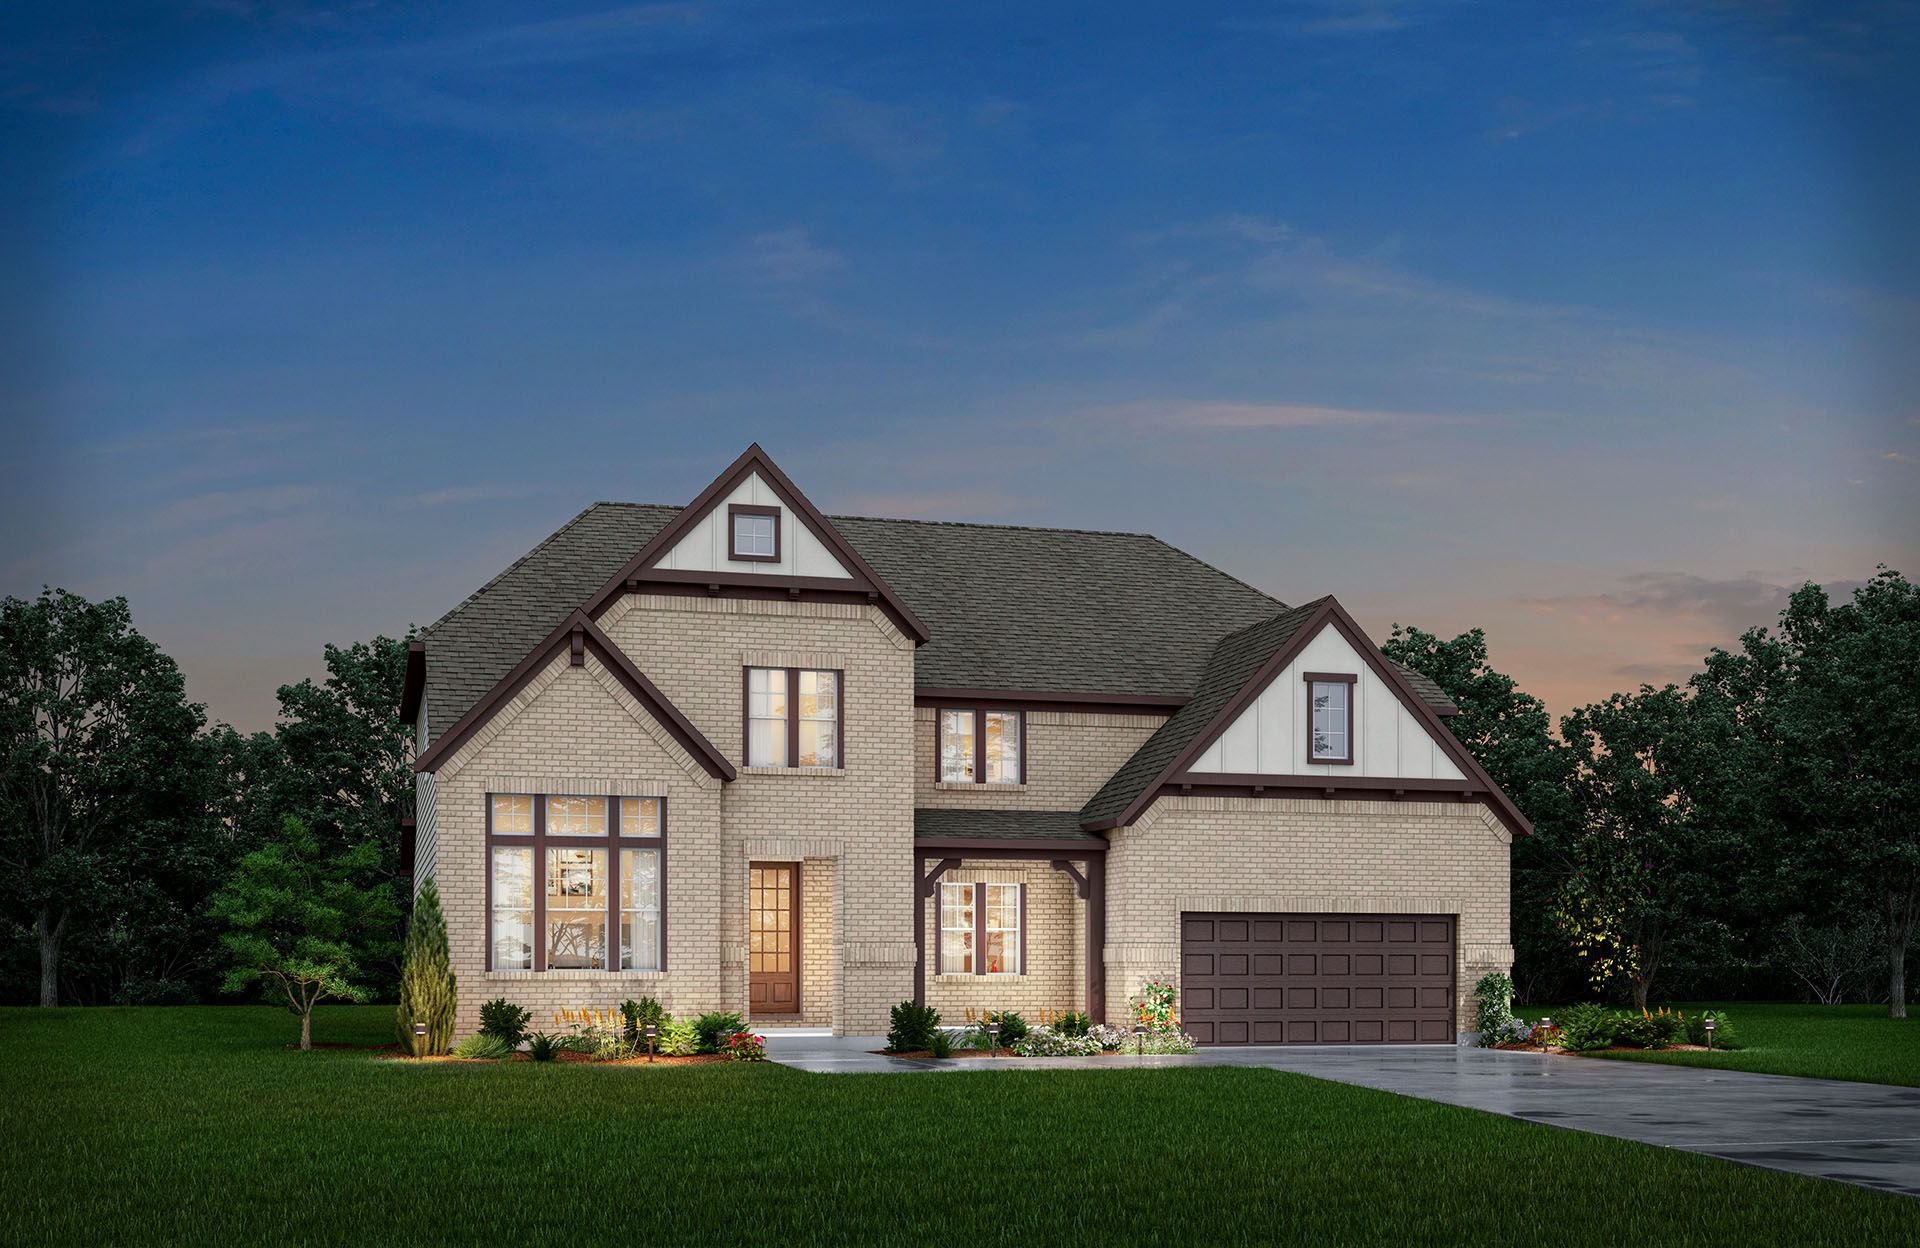 Single Family for Active at Winfield 5146 Oak Ridge Trail Columbus, Indiana 47201 United States